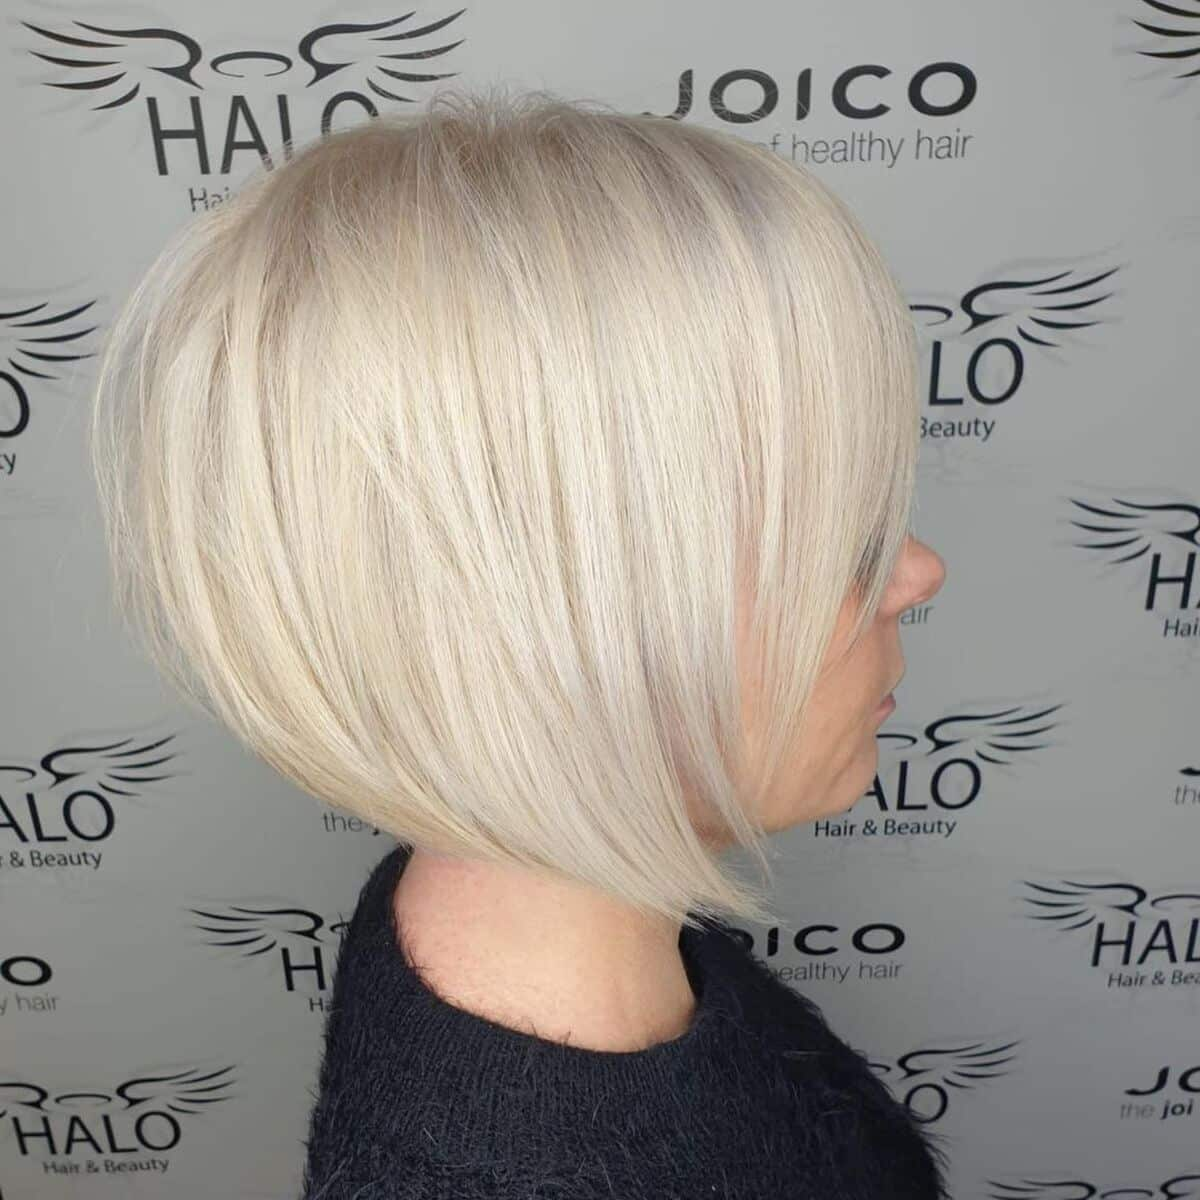 21 Hottest Short, Graduated Bob Haircuts for On-Trend Women